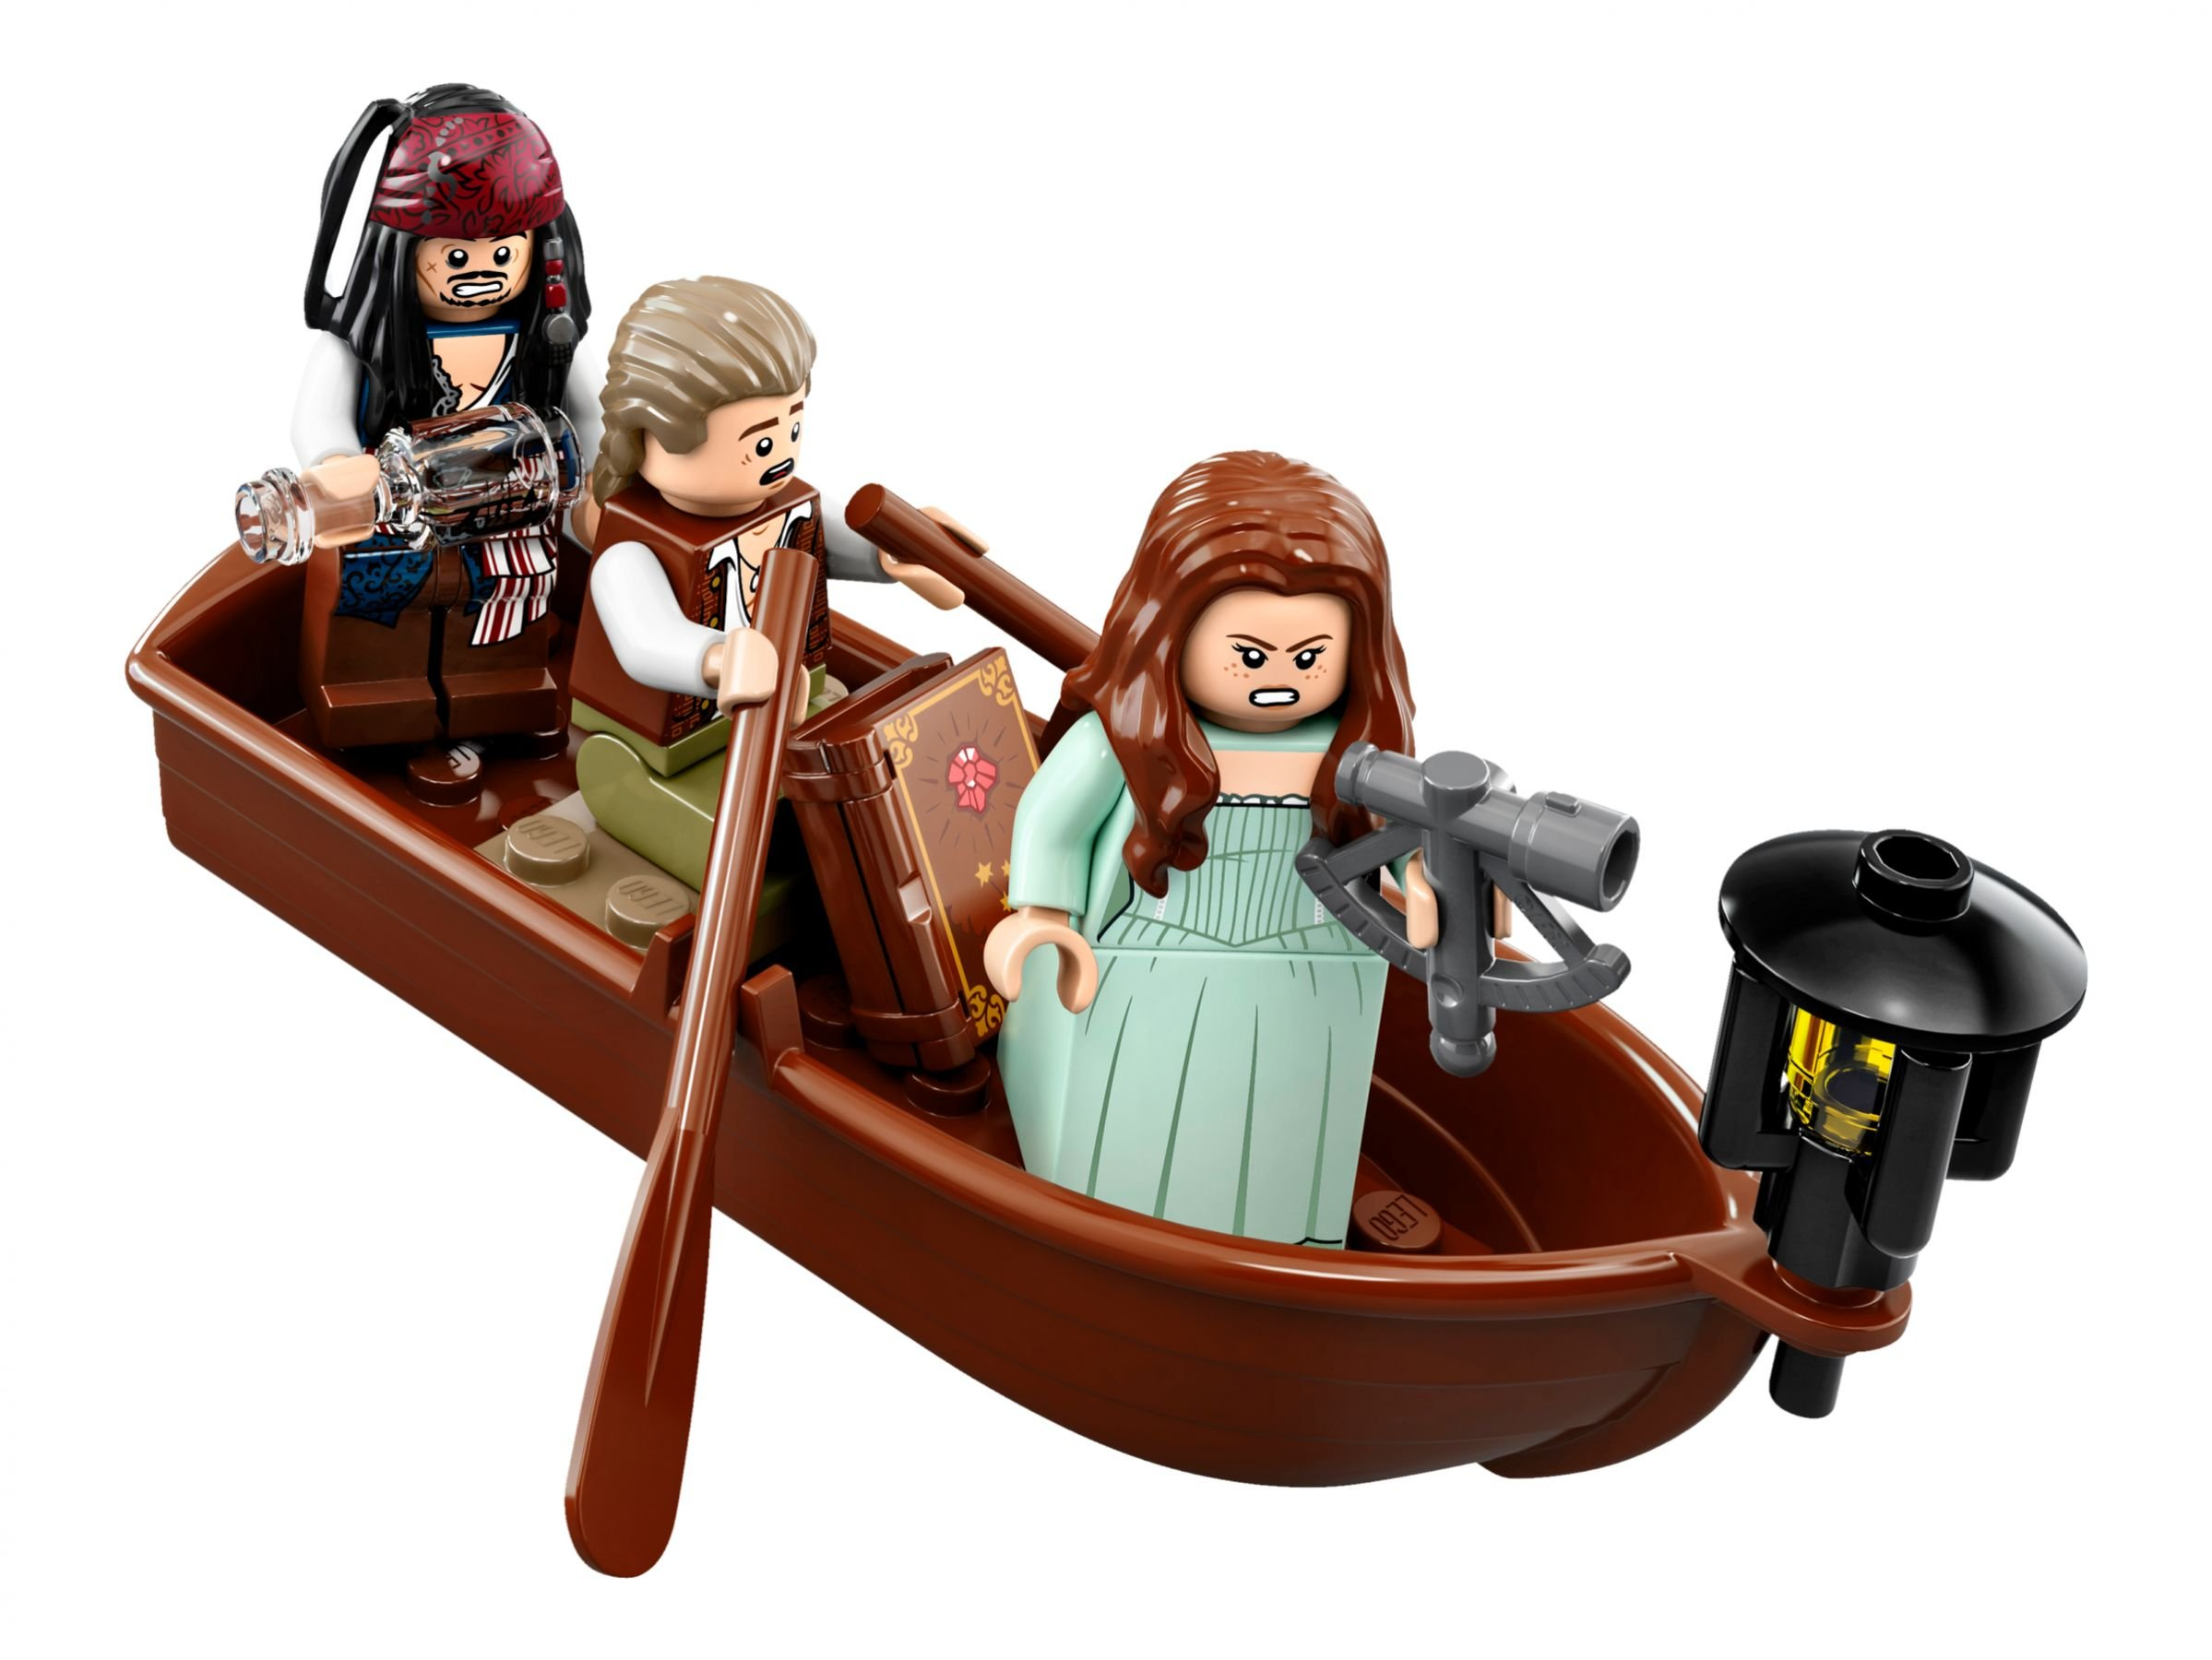 LEGO Advanced Models 71042 Silent Mary LEGO_71042_alt7_Silent_Mary.jpg